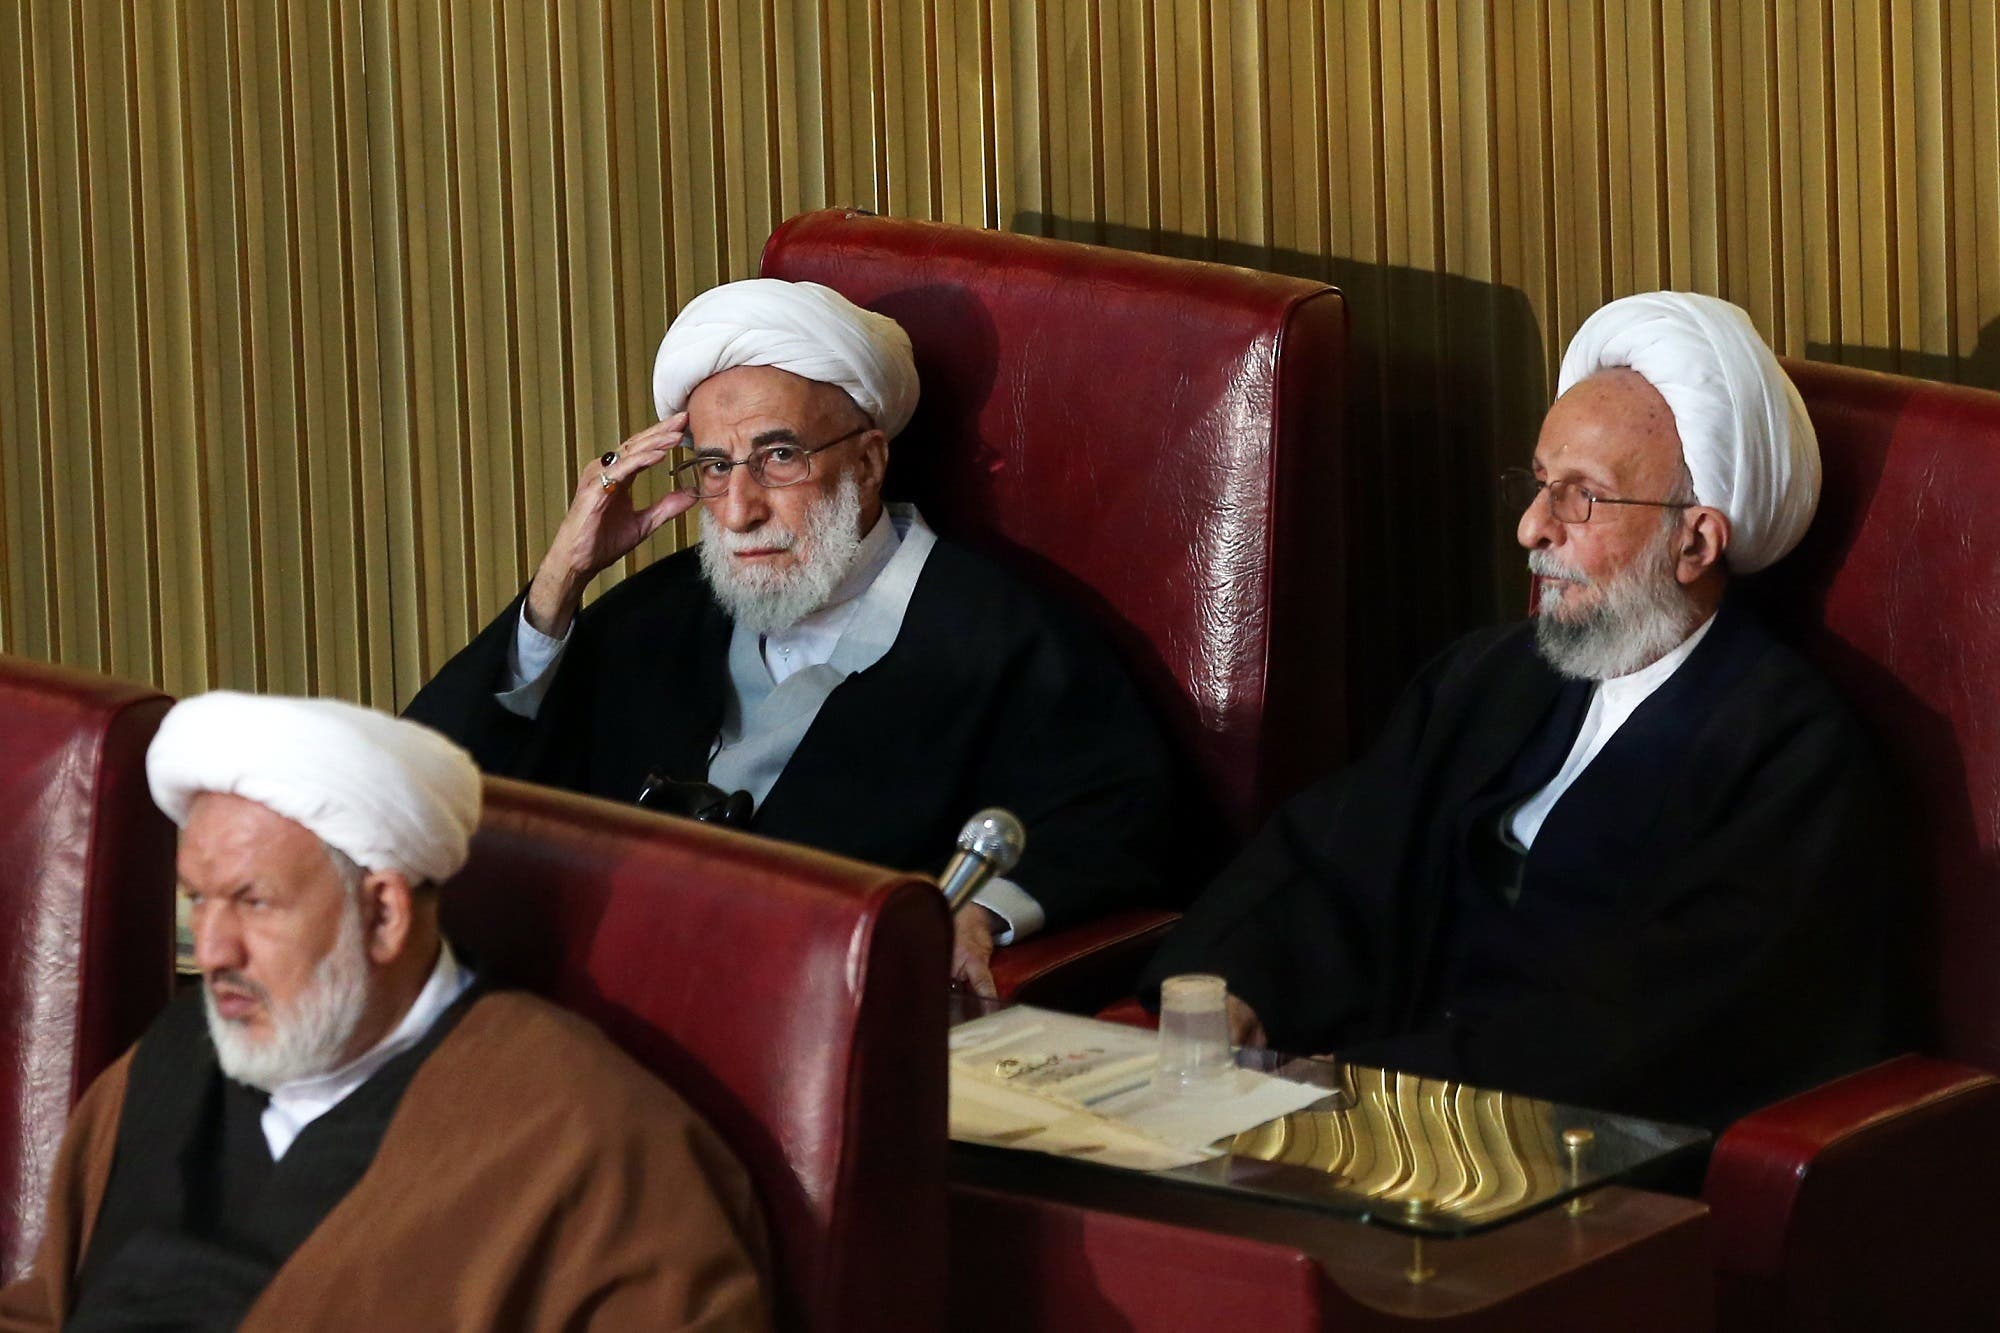 Ayatollah Ahmad Jannati, center, and Mesbah Yazdi, right, attend the fourth assembly in Tehran on March 8, 2016. (AP)